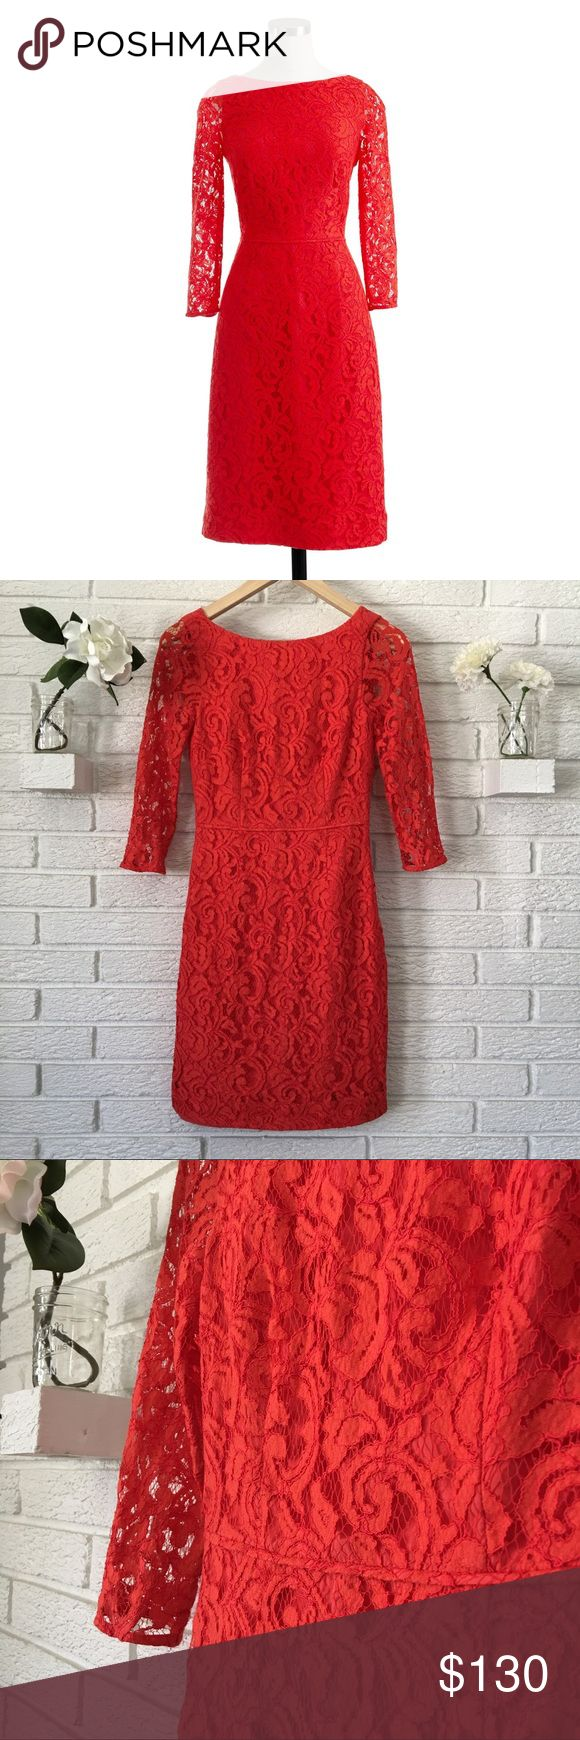 J.Crew Natalia Dress in Leavers Lace Poppy Red Amazing J. Crew Natalia dress. Poppy Red color in Leavers lace. Perfect for bridesmaid dress or for Summer weddings! Fully lined, besides 3/4 sleeves. Great condition! J. Crew Dresses